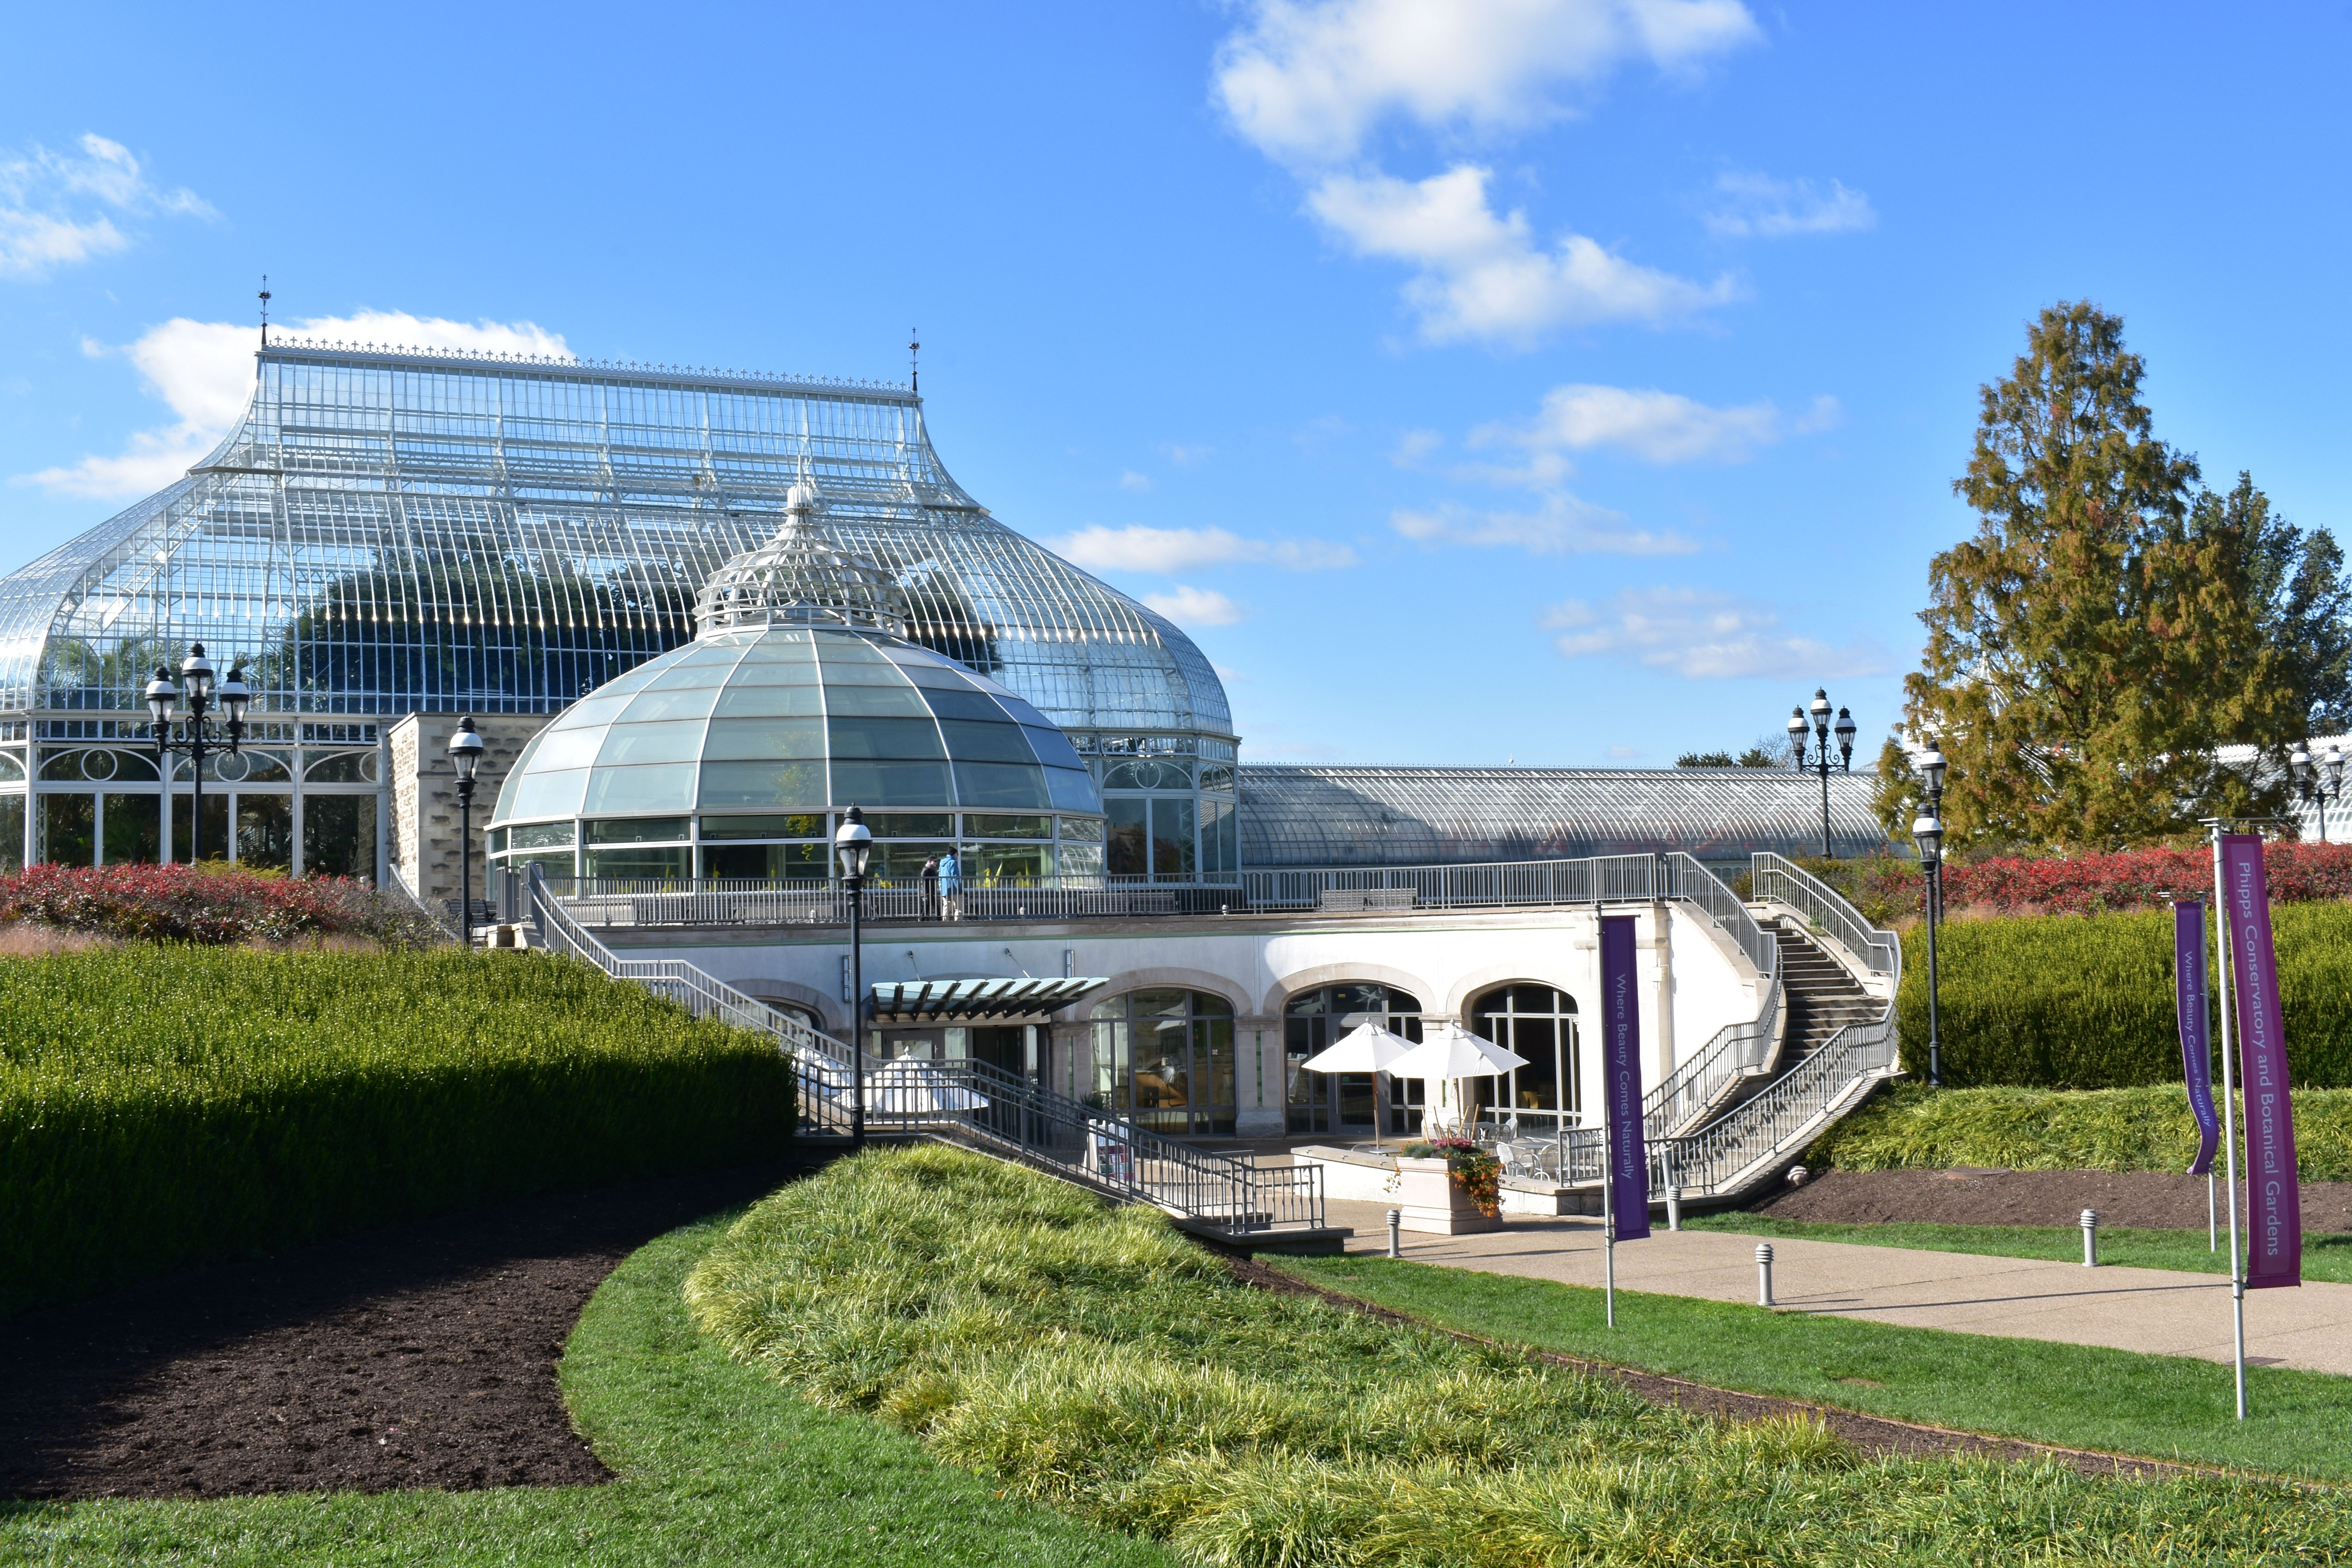 327267eeb3fac27a7953765b3c159a4e - Phipps Conservatory And Botanical Gardens Parking